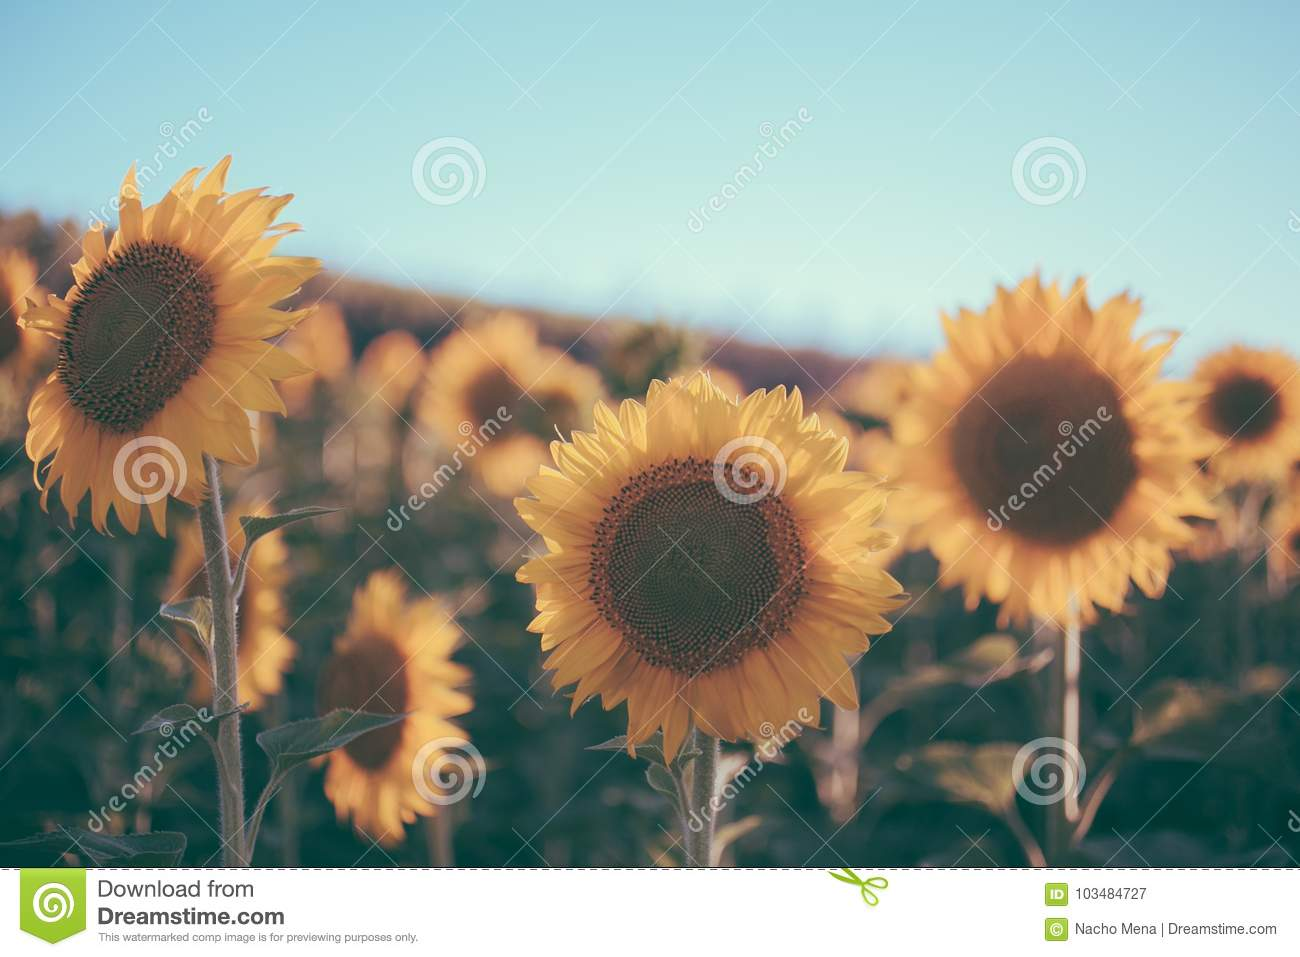 Download Sunflowers Texture And Background For Designers Field In Vintage Style Macro